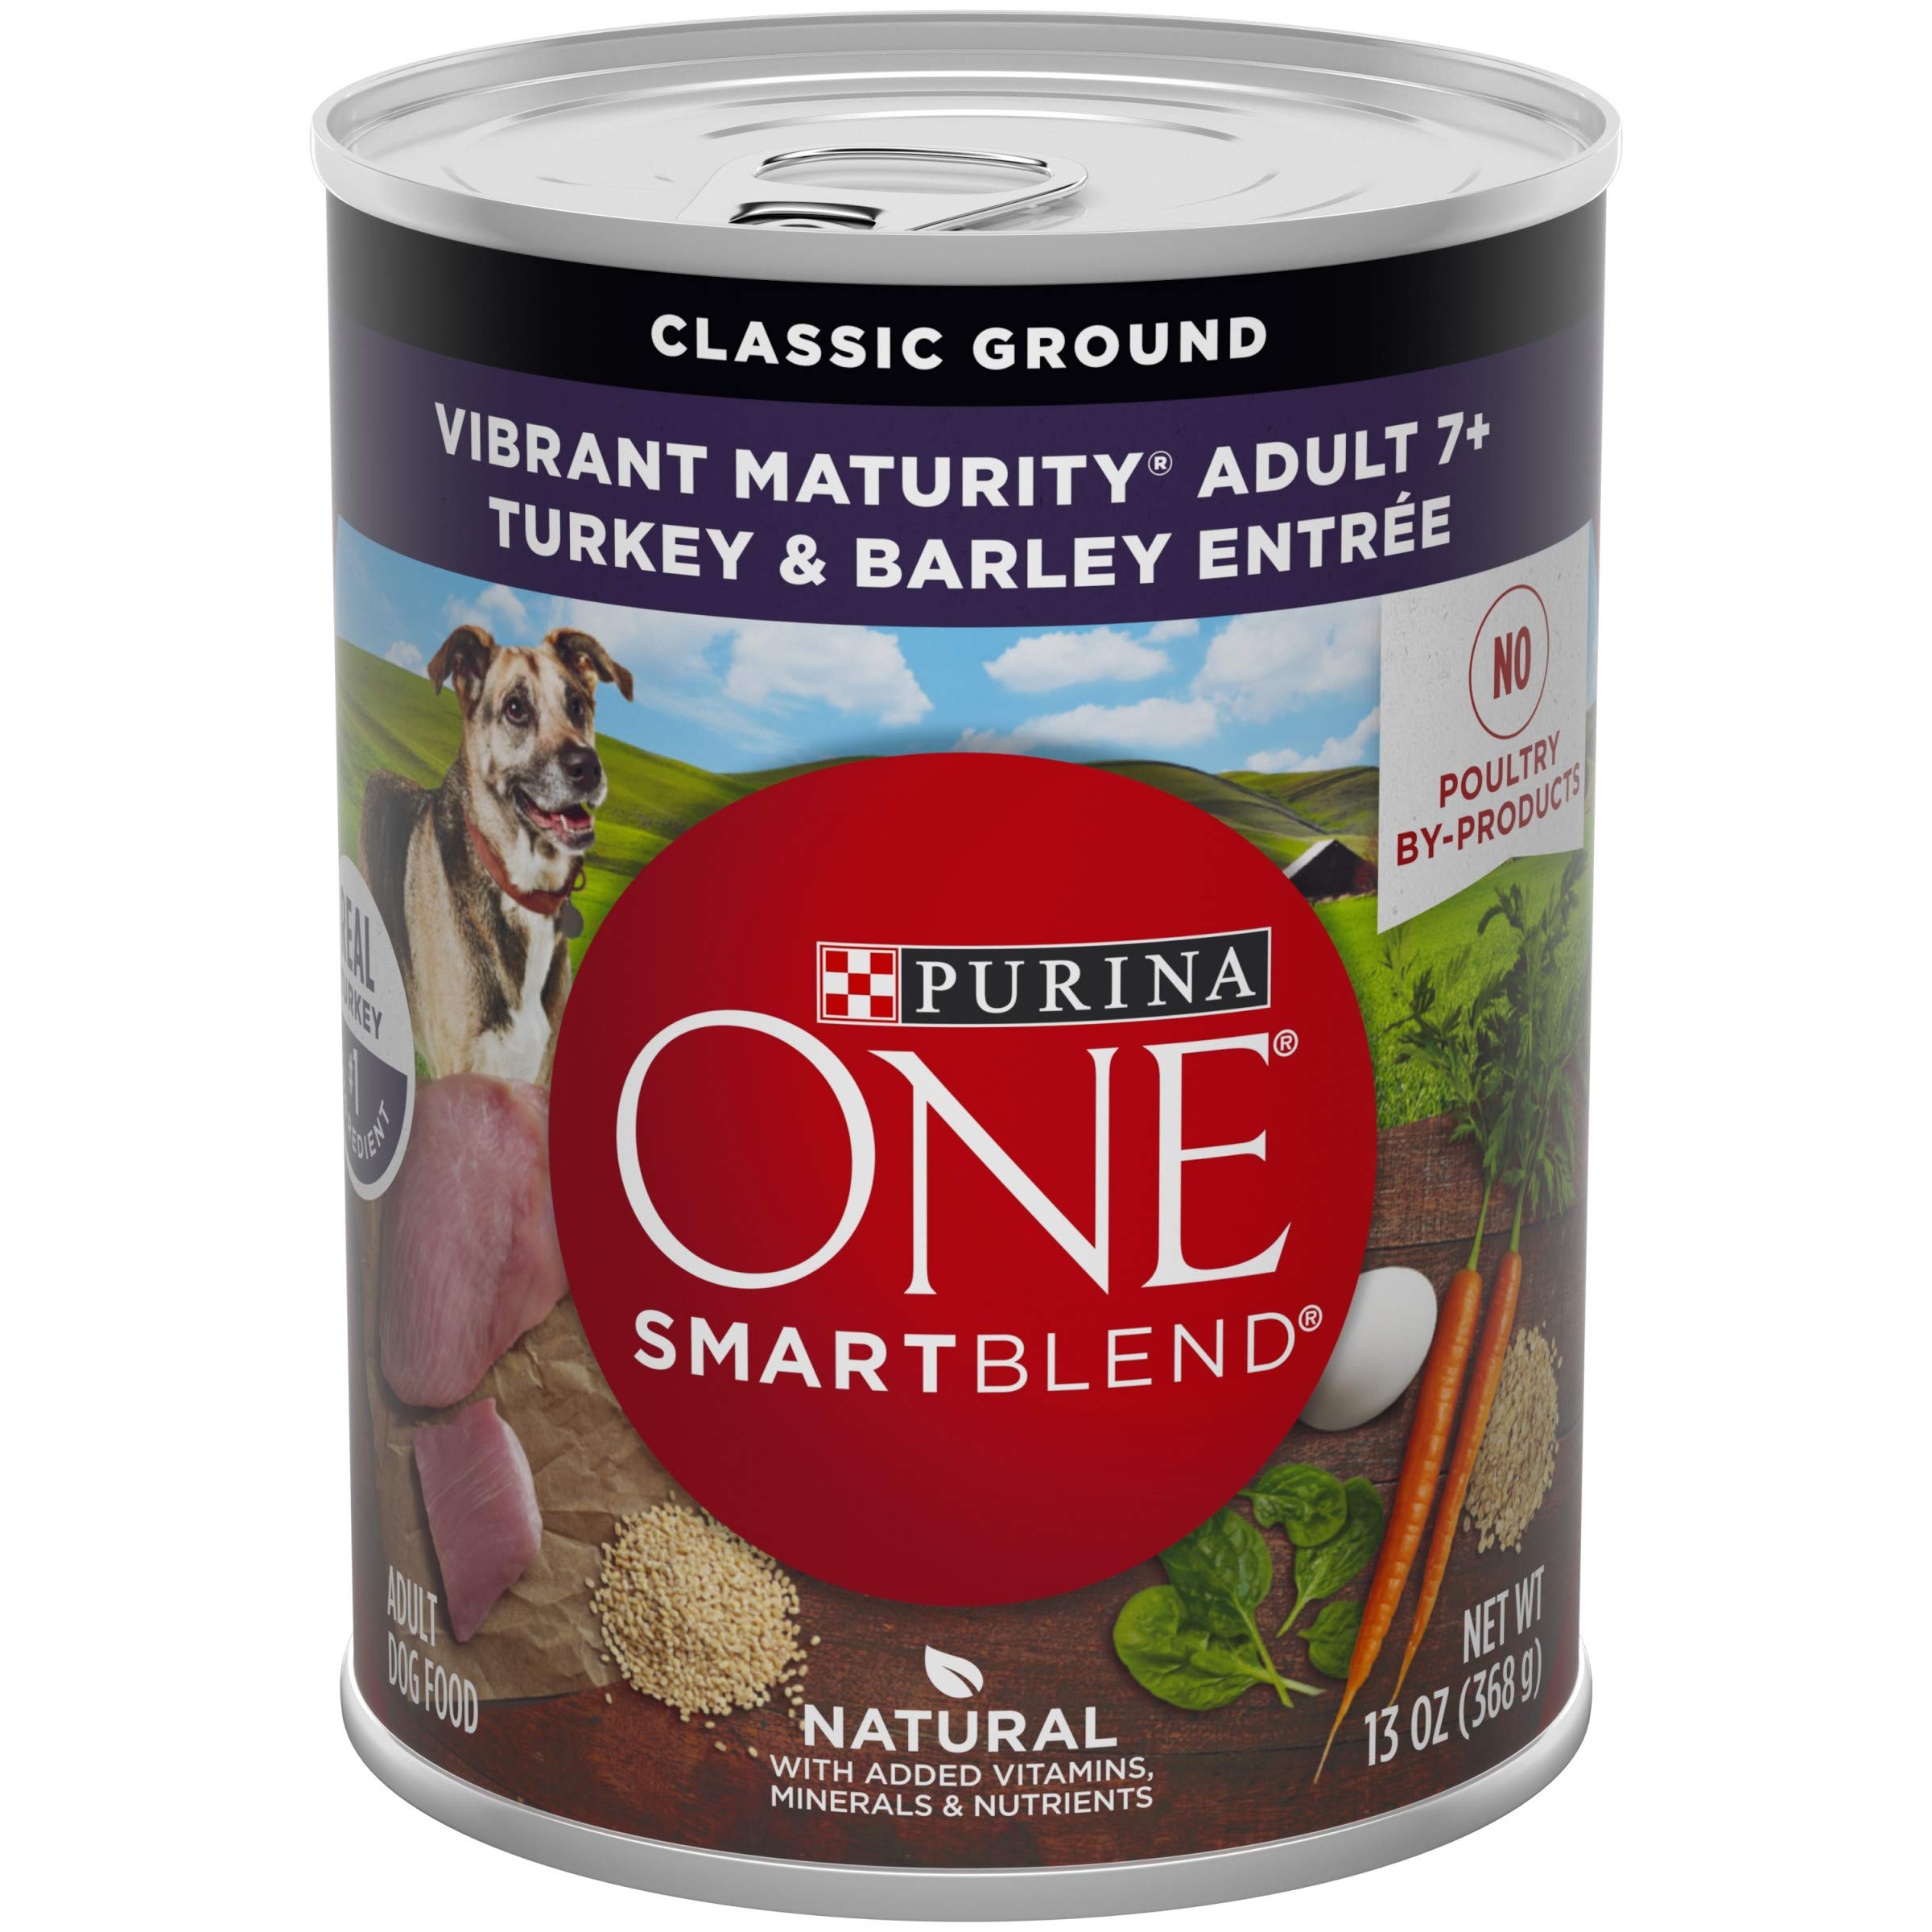 Purina ONE Natural Senior Pate Wet Dog Food, SmartBlend Vibrant Maturity 7+ Turkey & Barley Entree - (12) 13 oz. Cans by Purina ONE